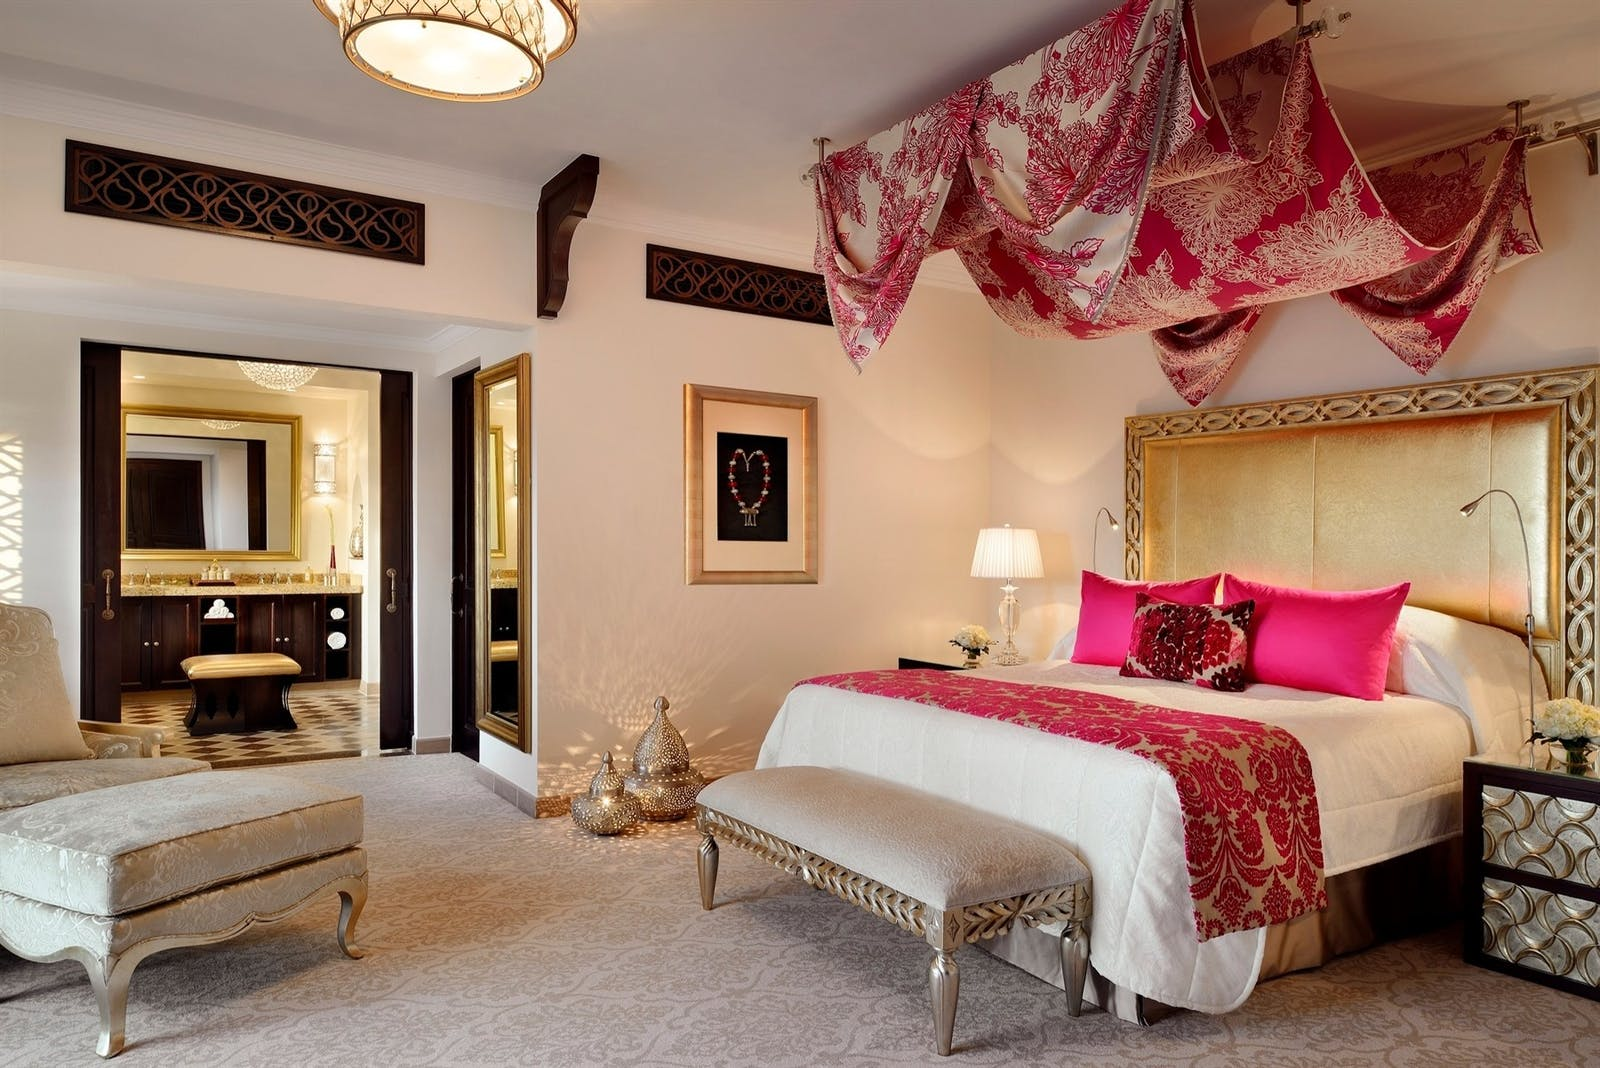 Arabian Court Prince Suite at One&Only Royal Mirage, Dubai